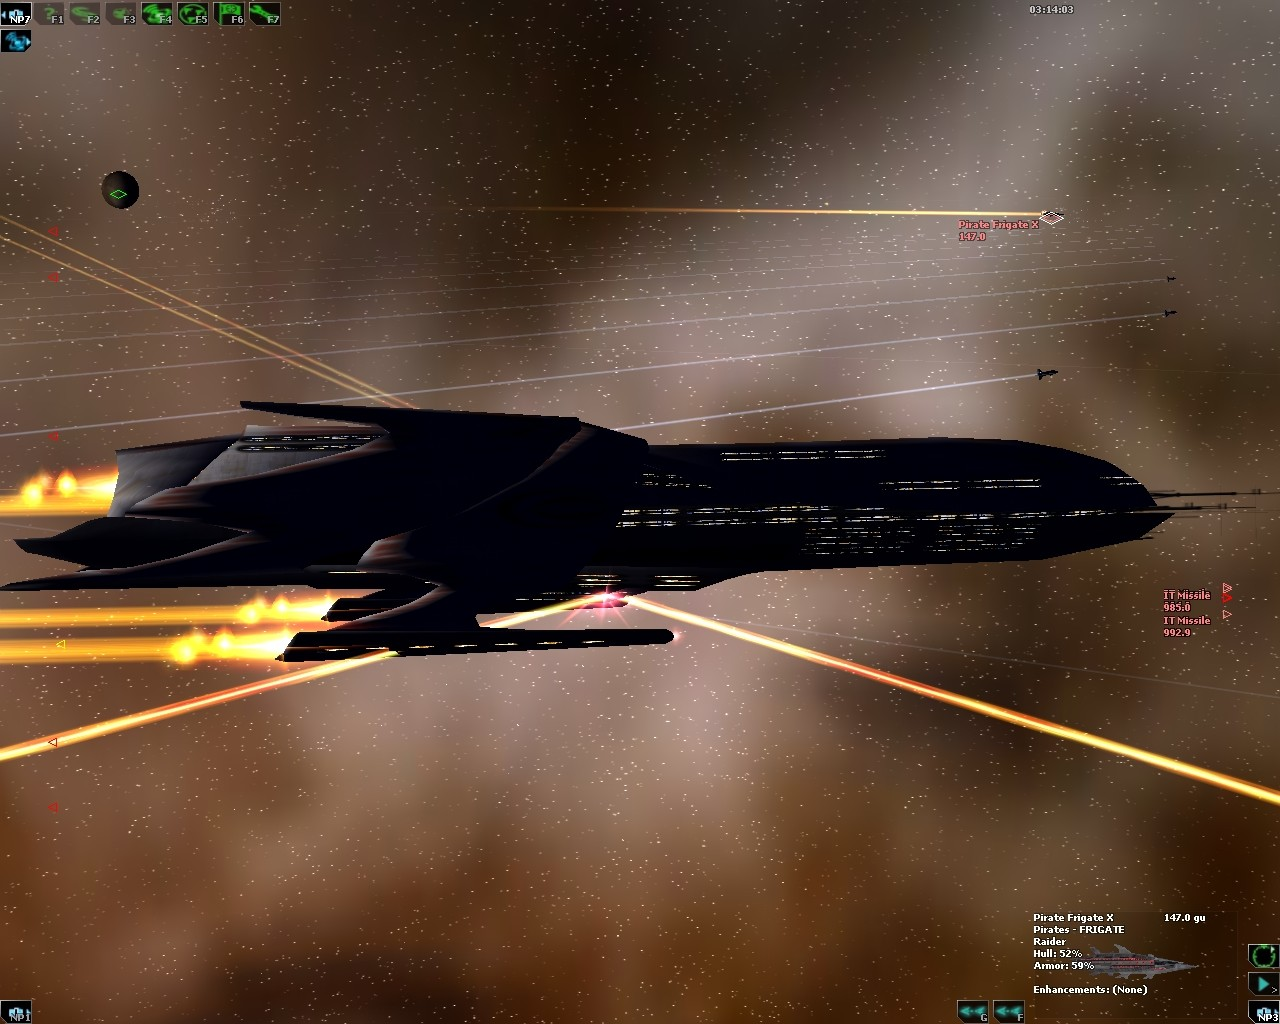 DarkSpace - A UGTO Battlecruiser launching SABOT Rockets